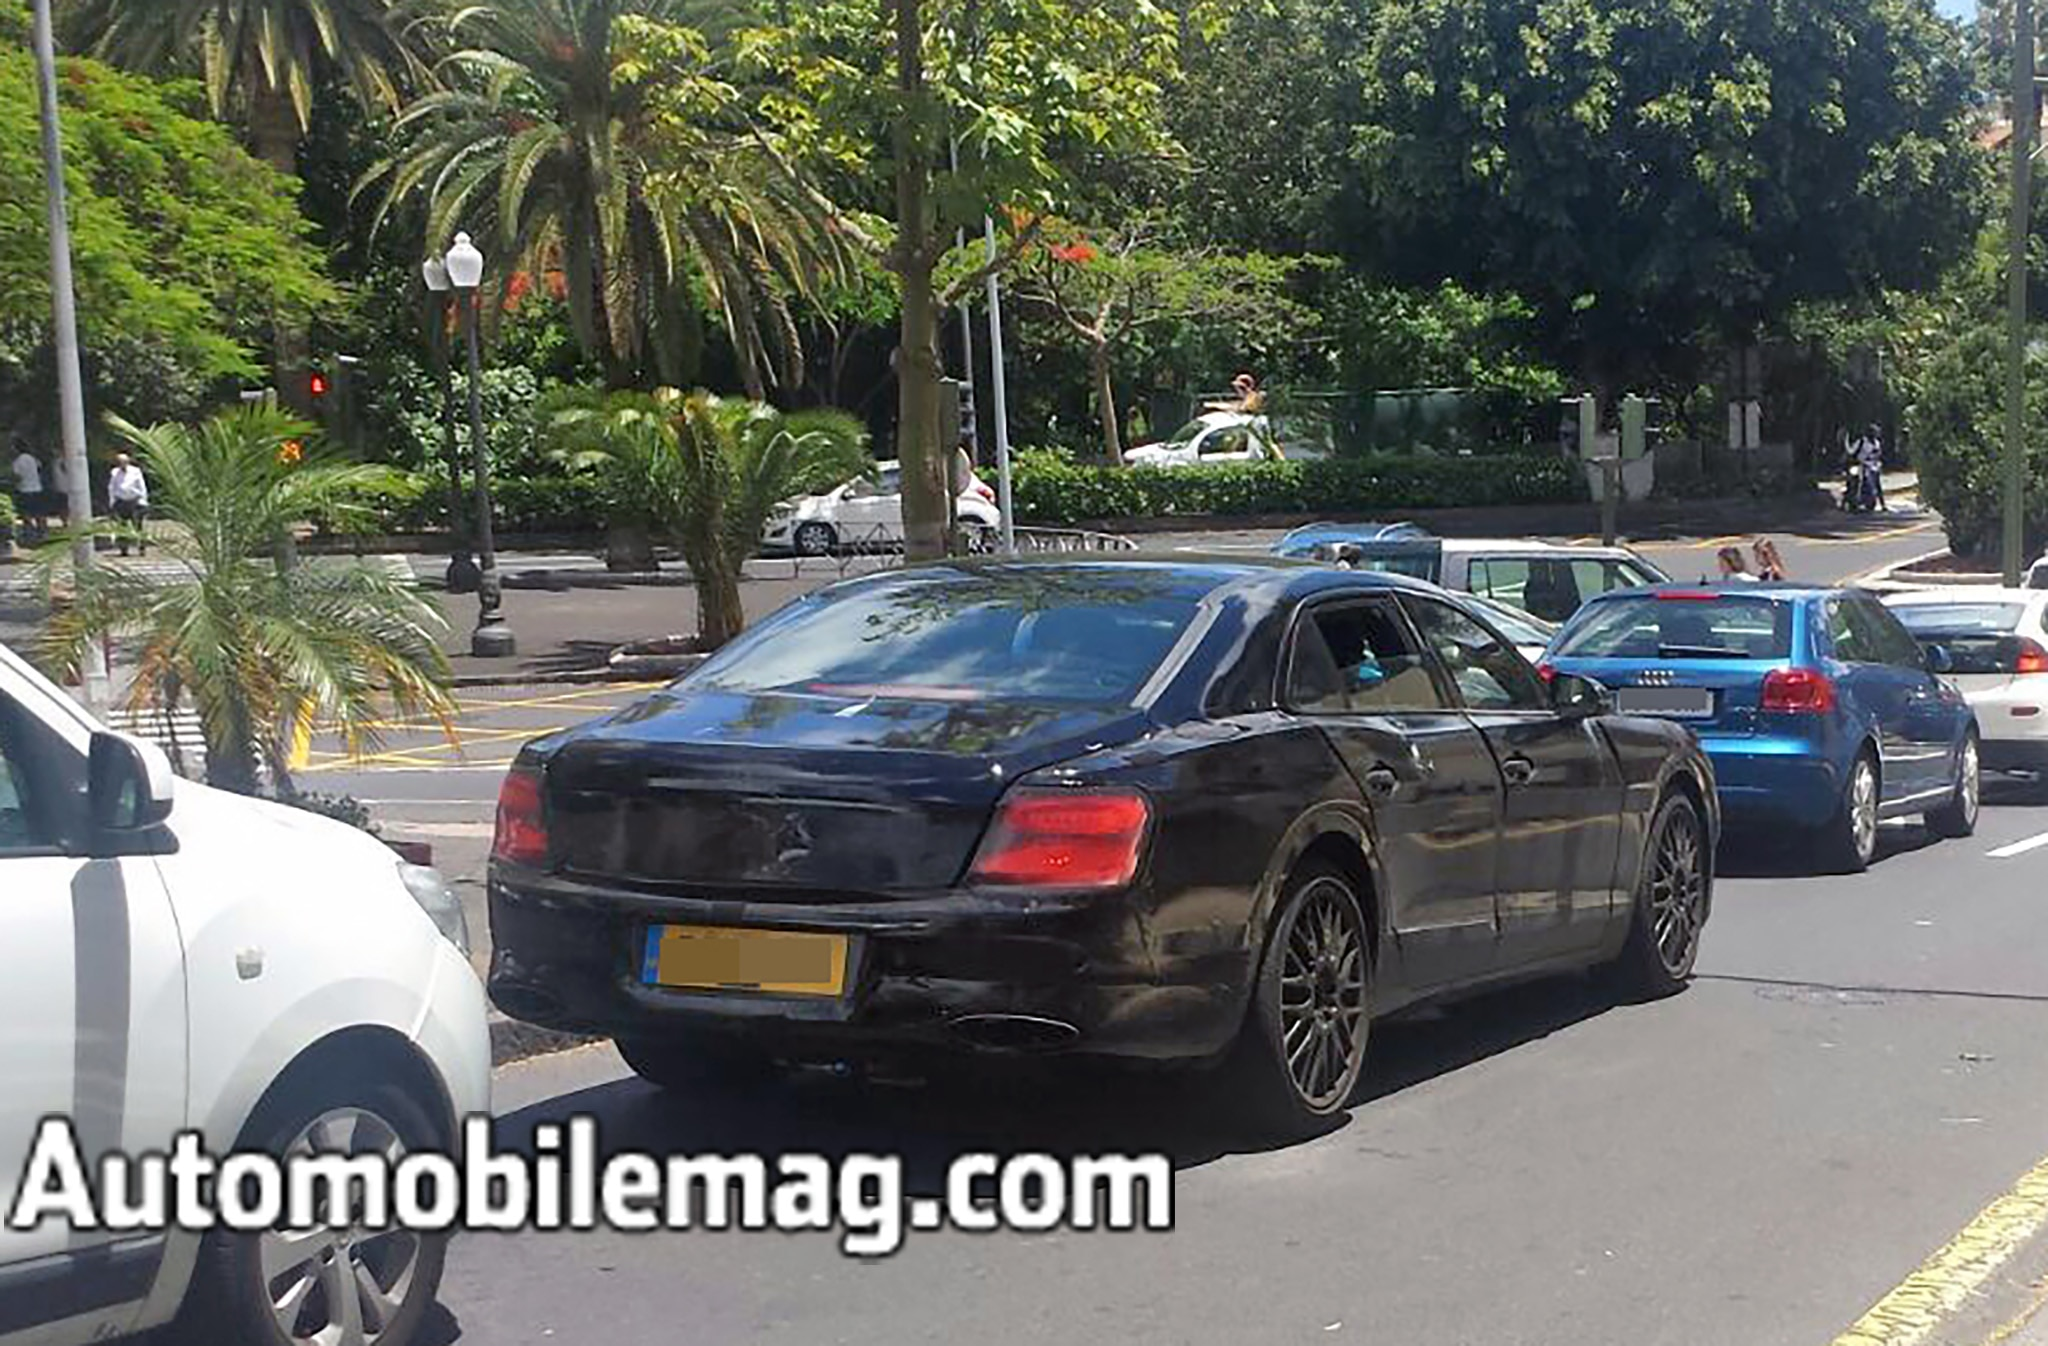 Autos Maserati Ghibli Facelift Spied Cheers Massive Online Party